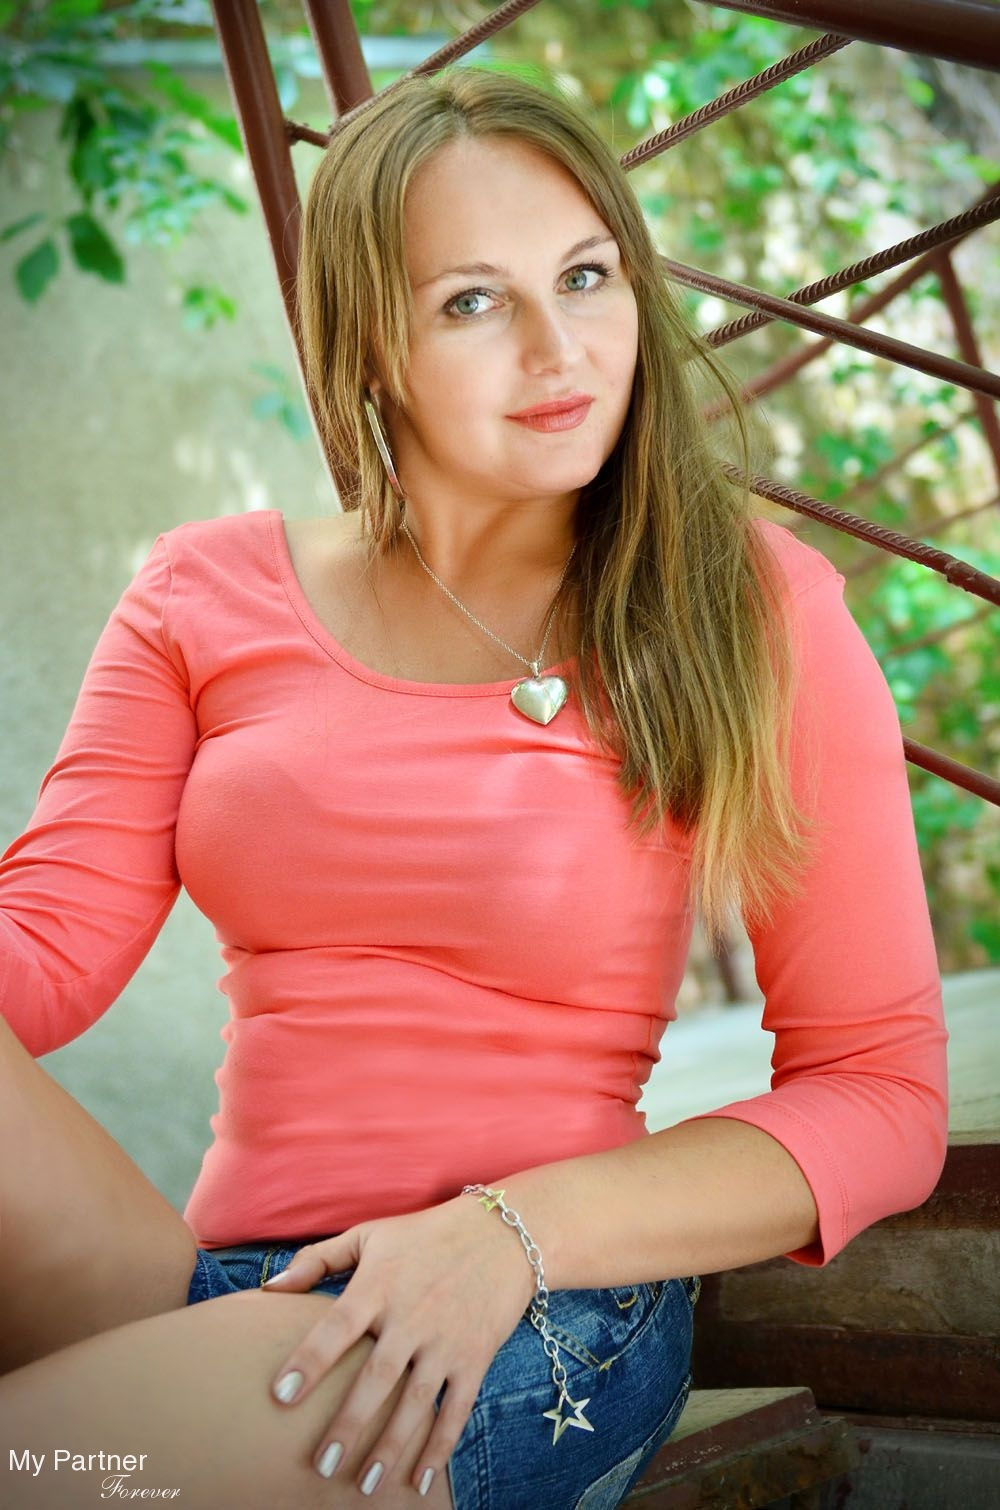 meeteetse singles dating site Dating sites in poland -polish dating site which offers unique vip services for single polish  welcome epolishwife is a dating service for singles from all over .